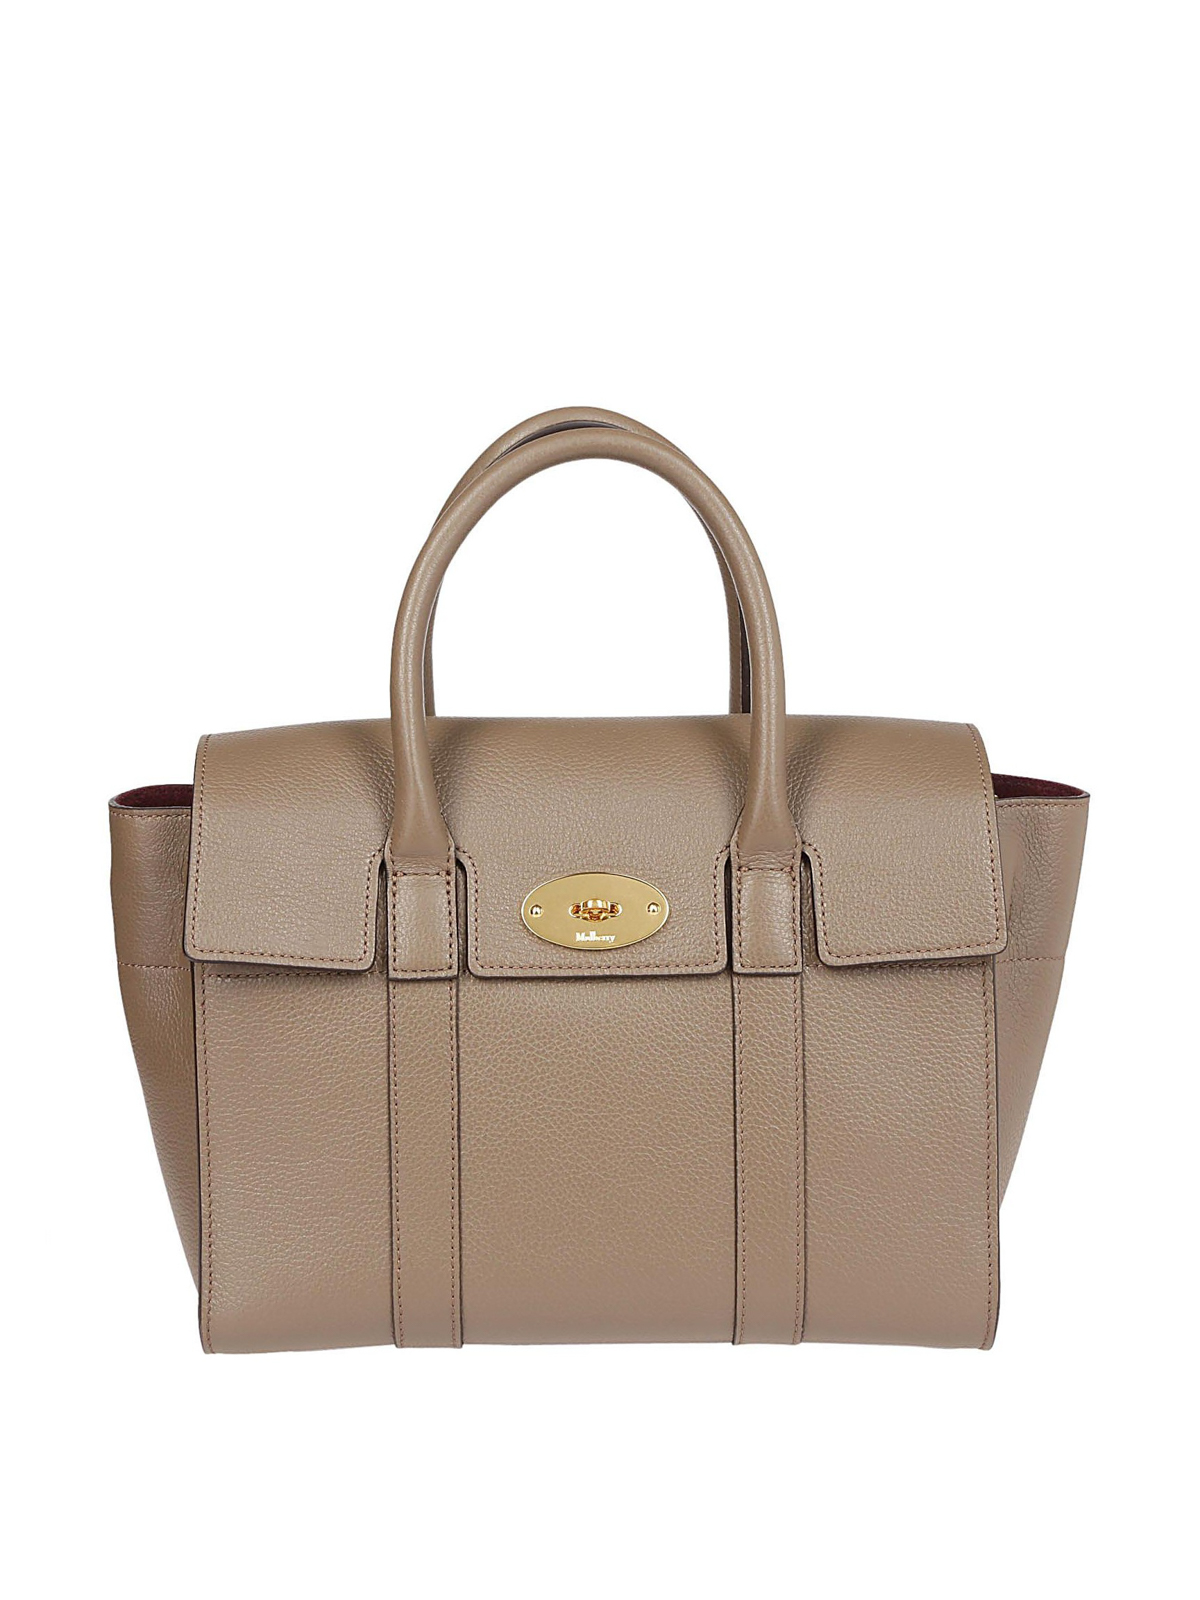 b8f9ae1b829d Mulberry - Small Bayswater clay grain leather bag - bowling bags ...